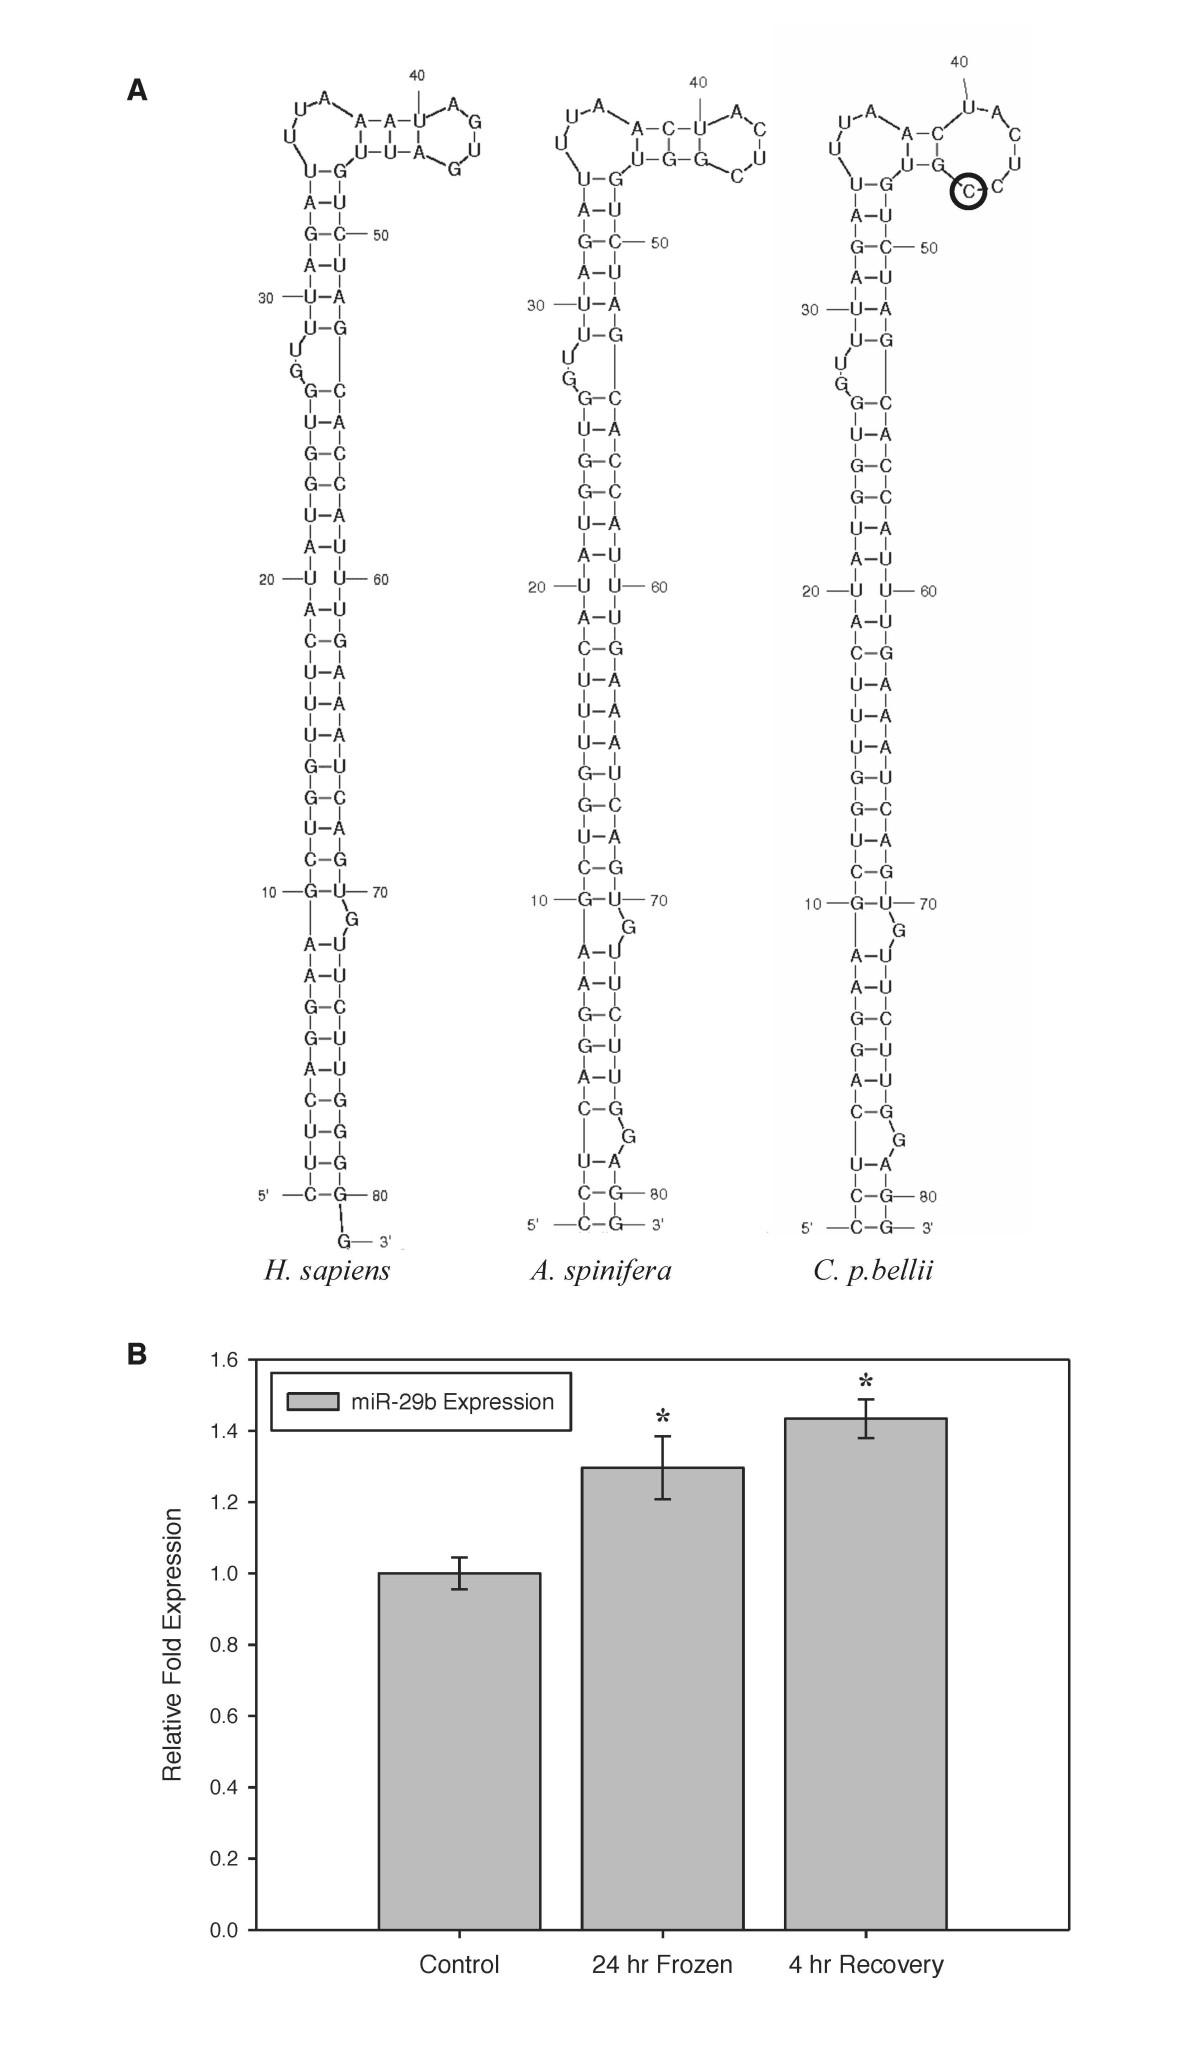 https://static-content.springer.com/image/art%3A10.1186%2Fgb-2013-14-3-r28/MediaObjects/13059_2012_Article_3061_Fig3_HTML.jpg